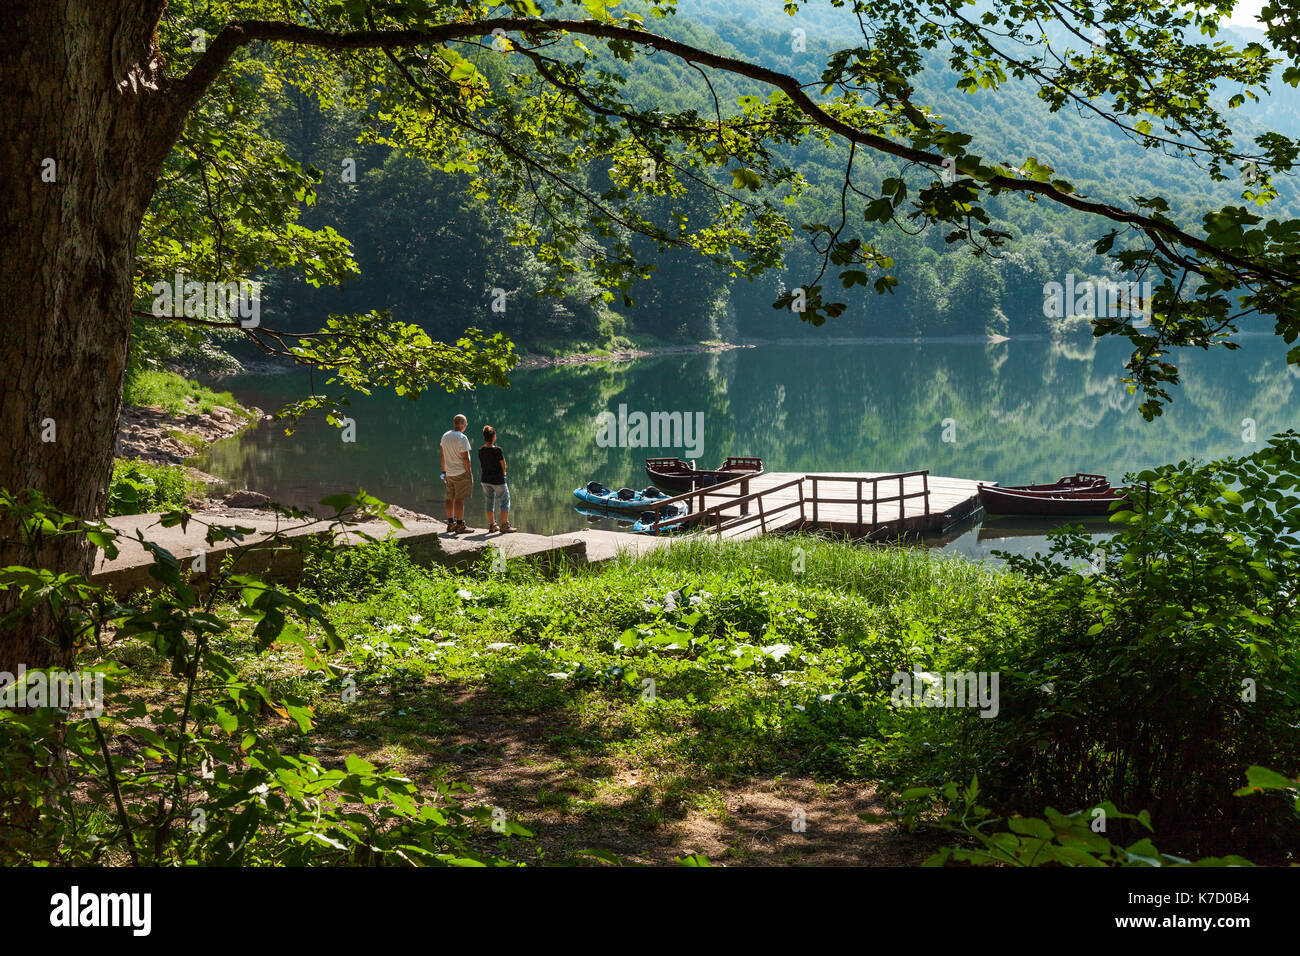 This move from the trump administration will open up more than half of tongass national forest to logging and development. Biogradsko Jezero In Montenegro Protected Forest Stock Photo Alamy